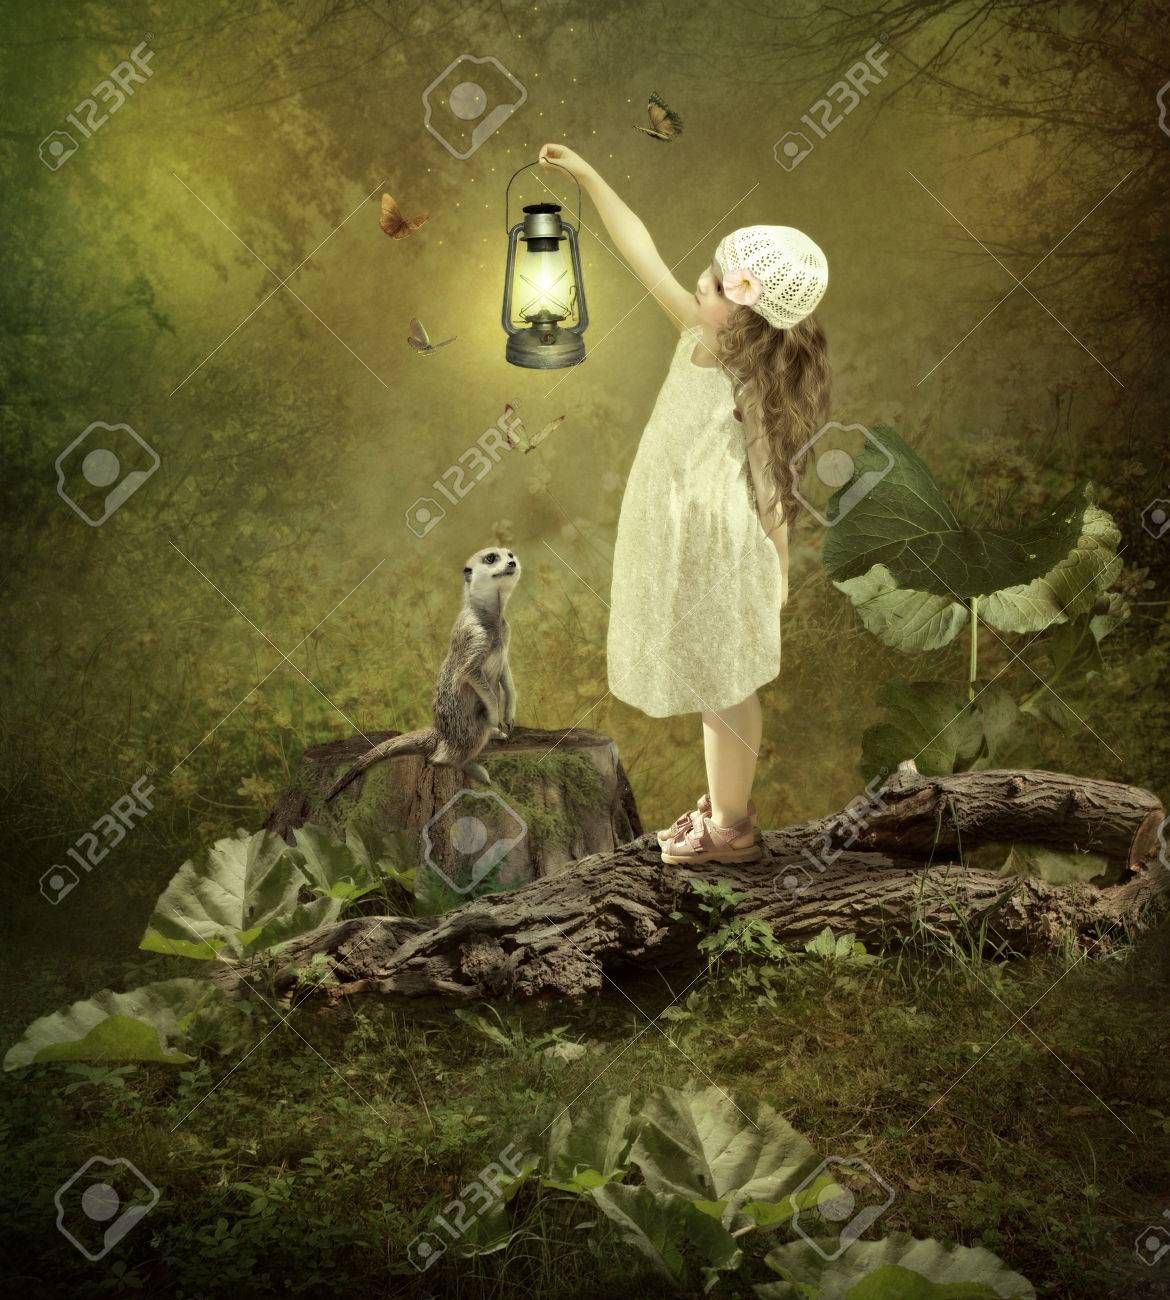 Little Girl With The Magic Lamp, Meerkat, Butterflies Stock Photo ... for Little Girl With Lamp  587fsj